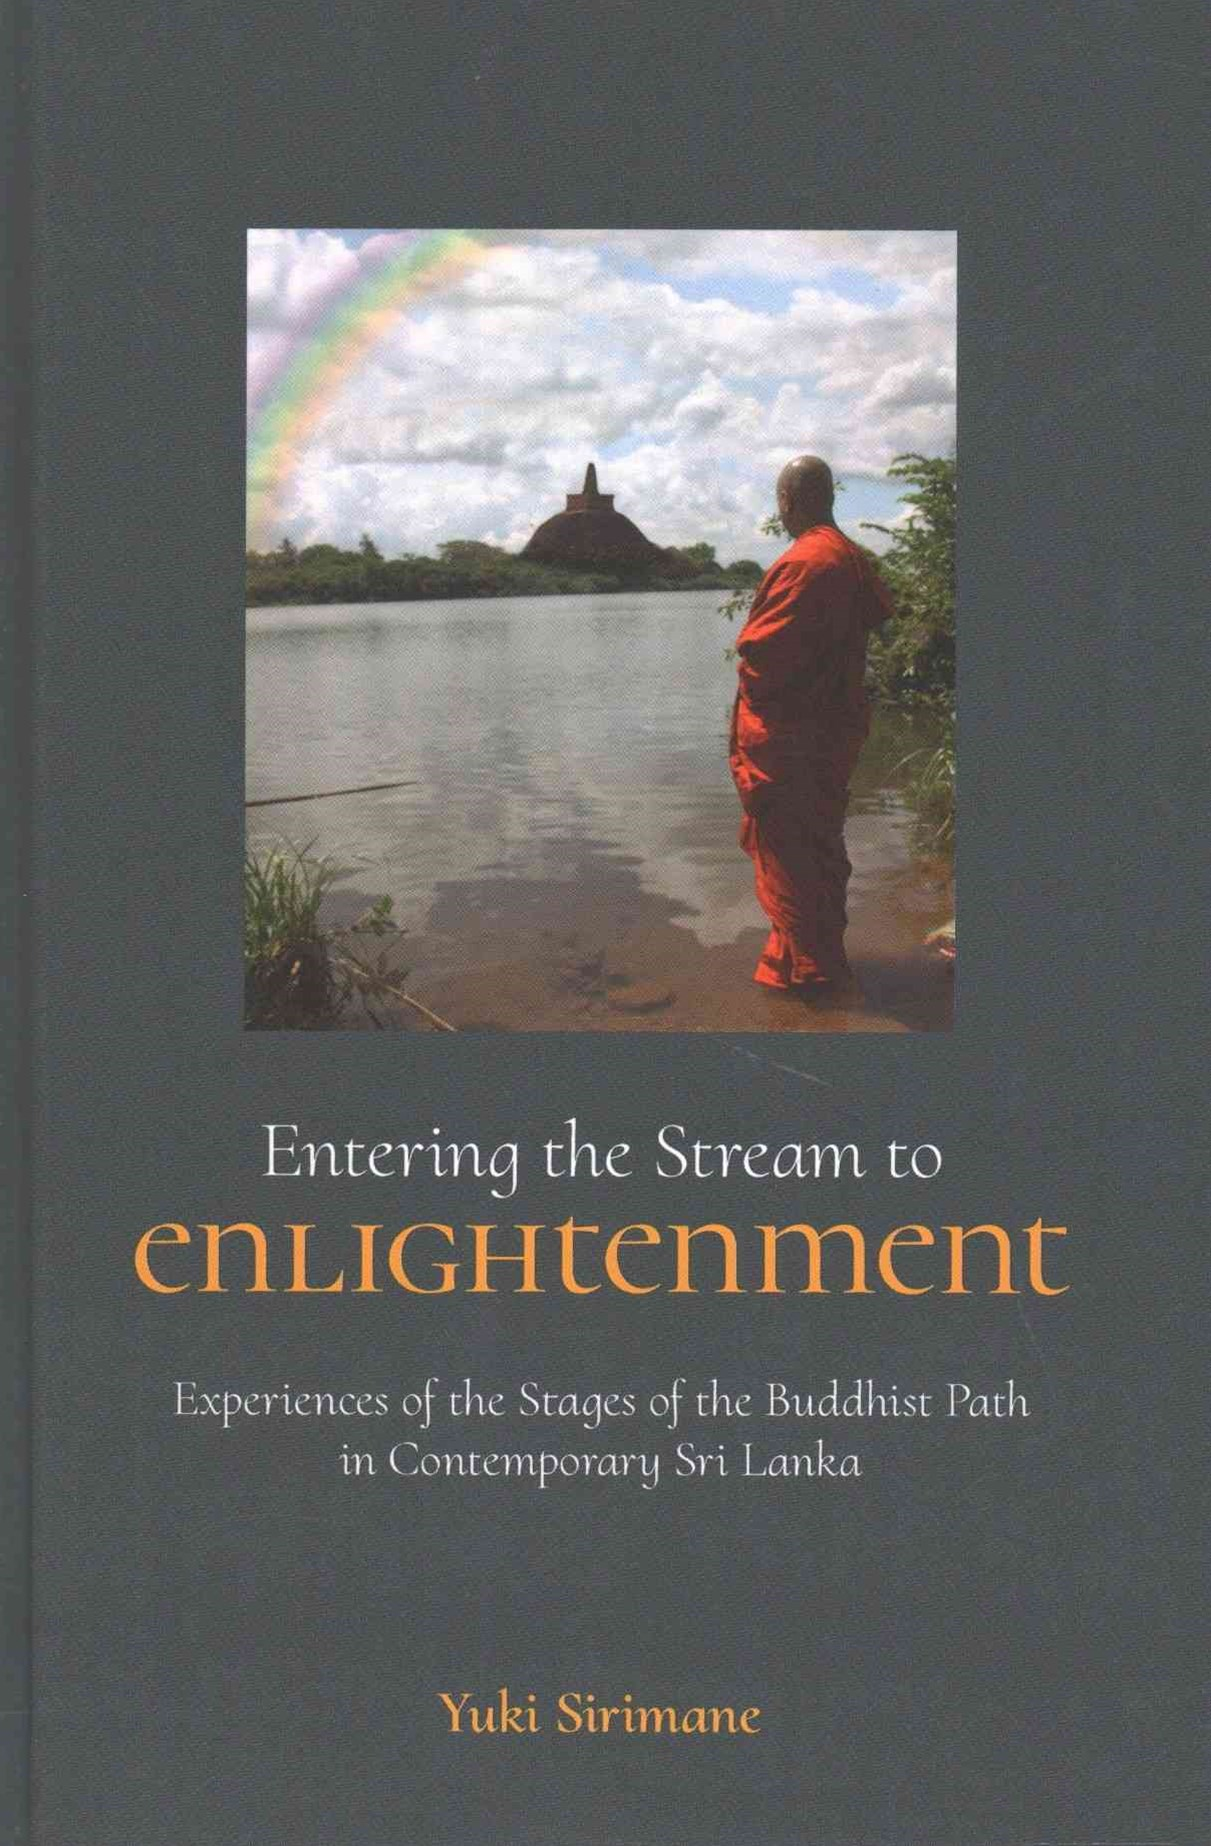 Entering the Stream to Enlightenment